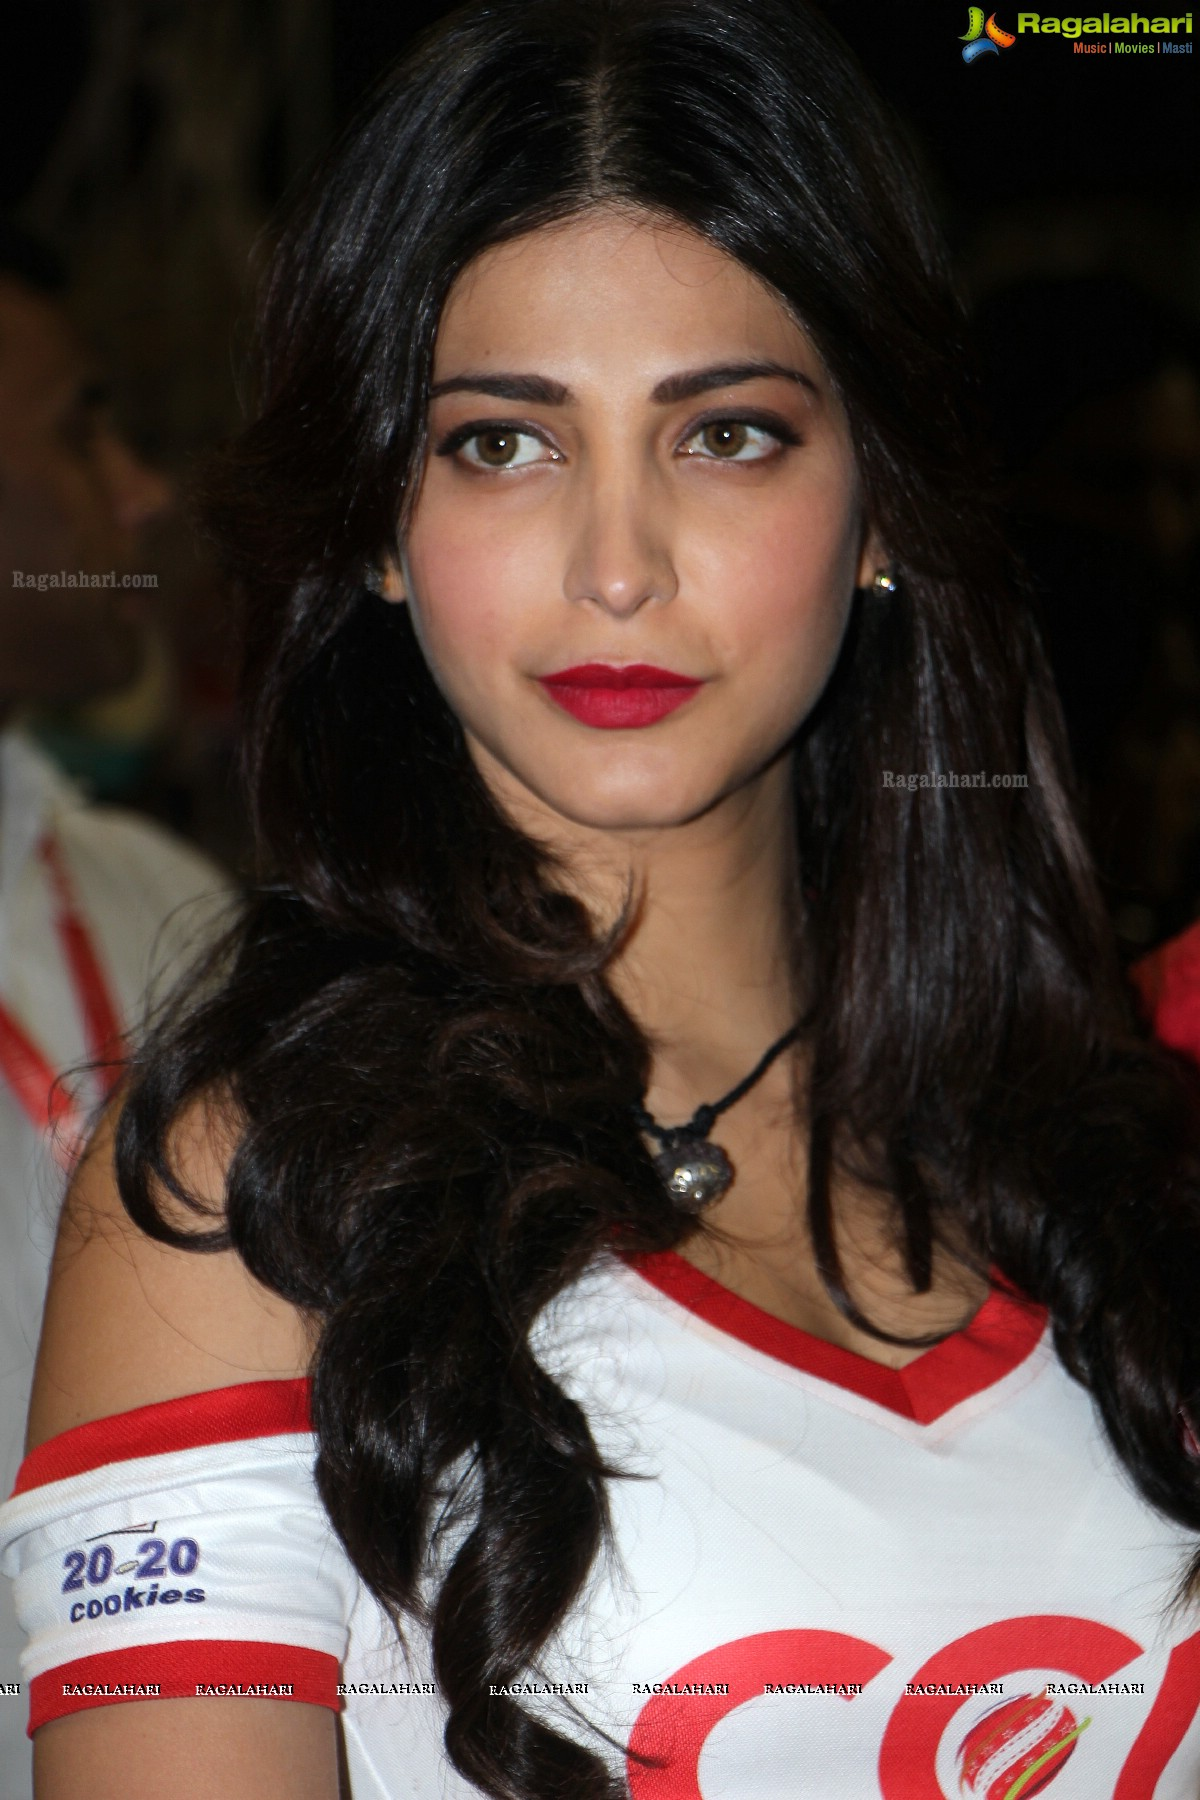 Shruti Hassan Image 37 Latest Bollywood Actor Wallpapersimages